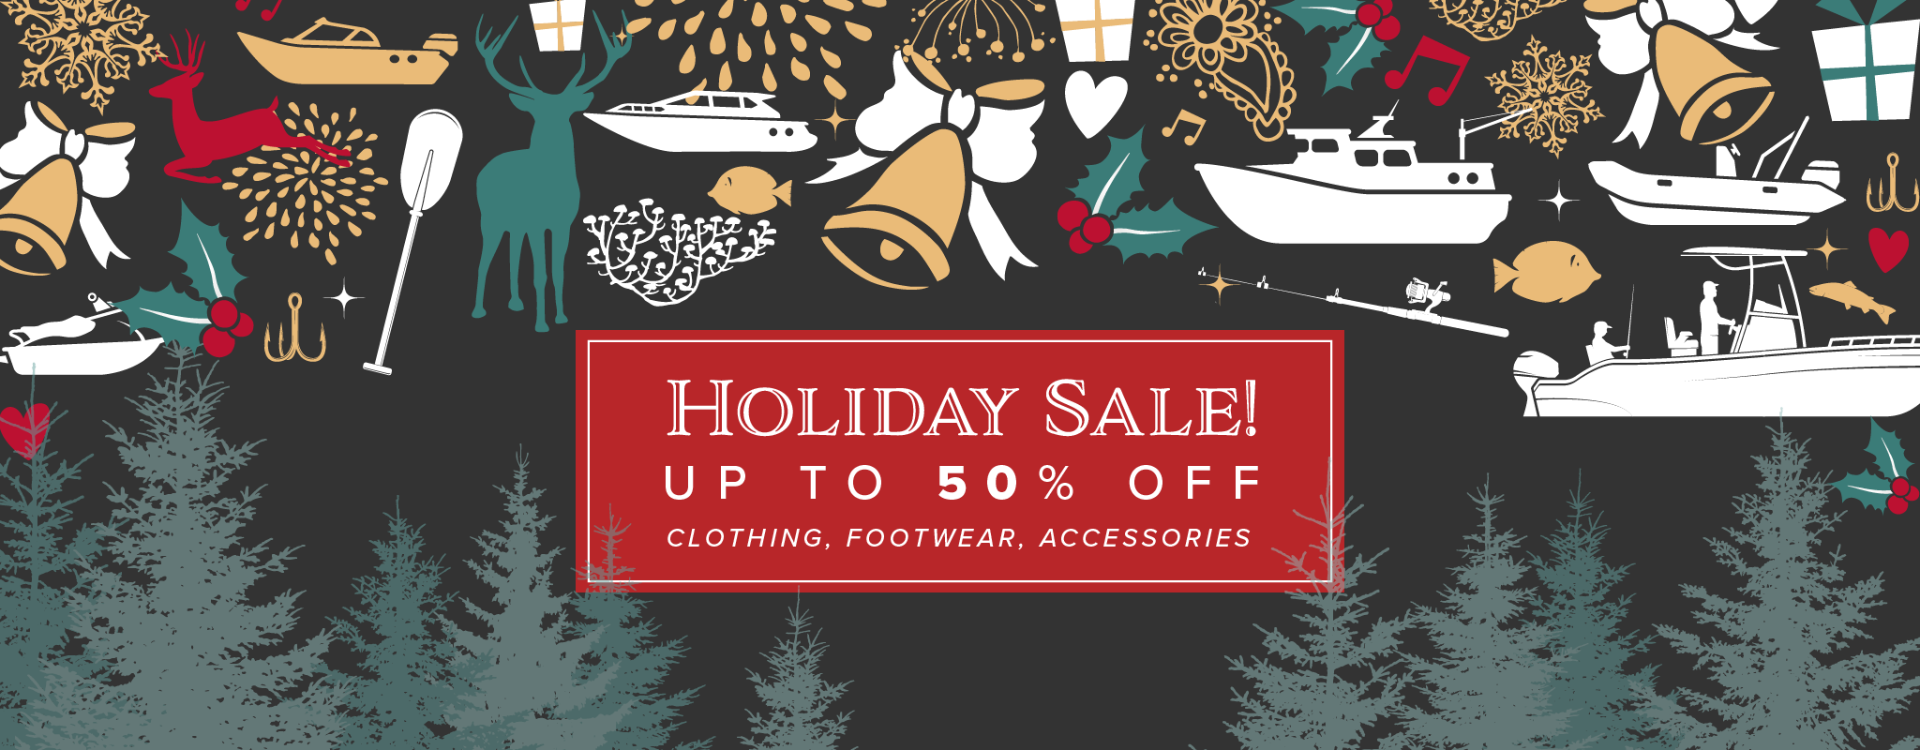 Holiday Clothing and Footwear Sale